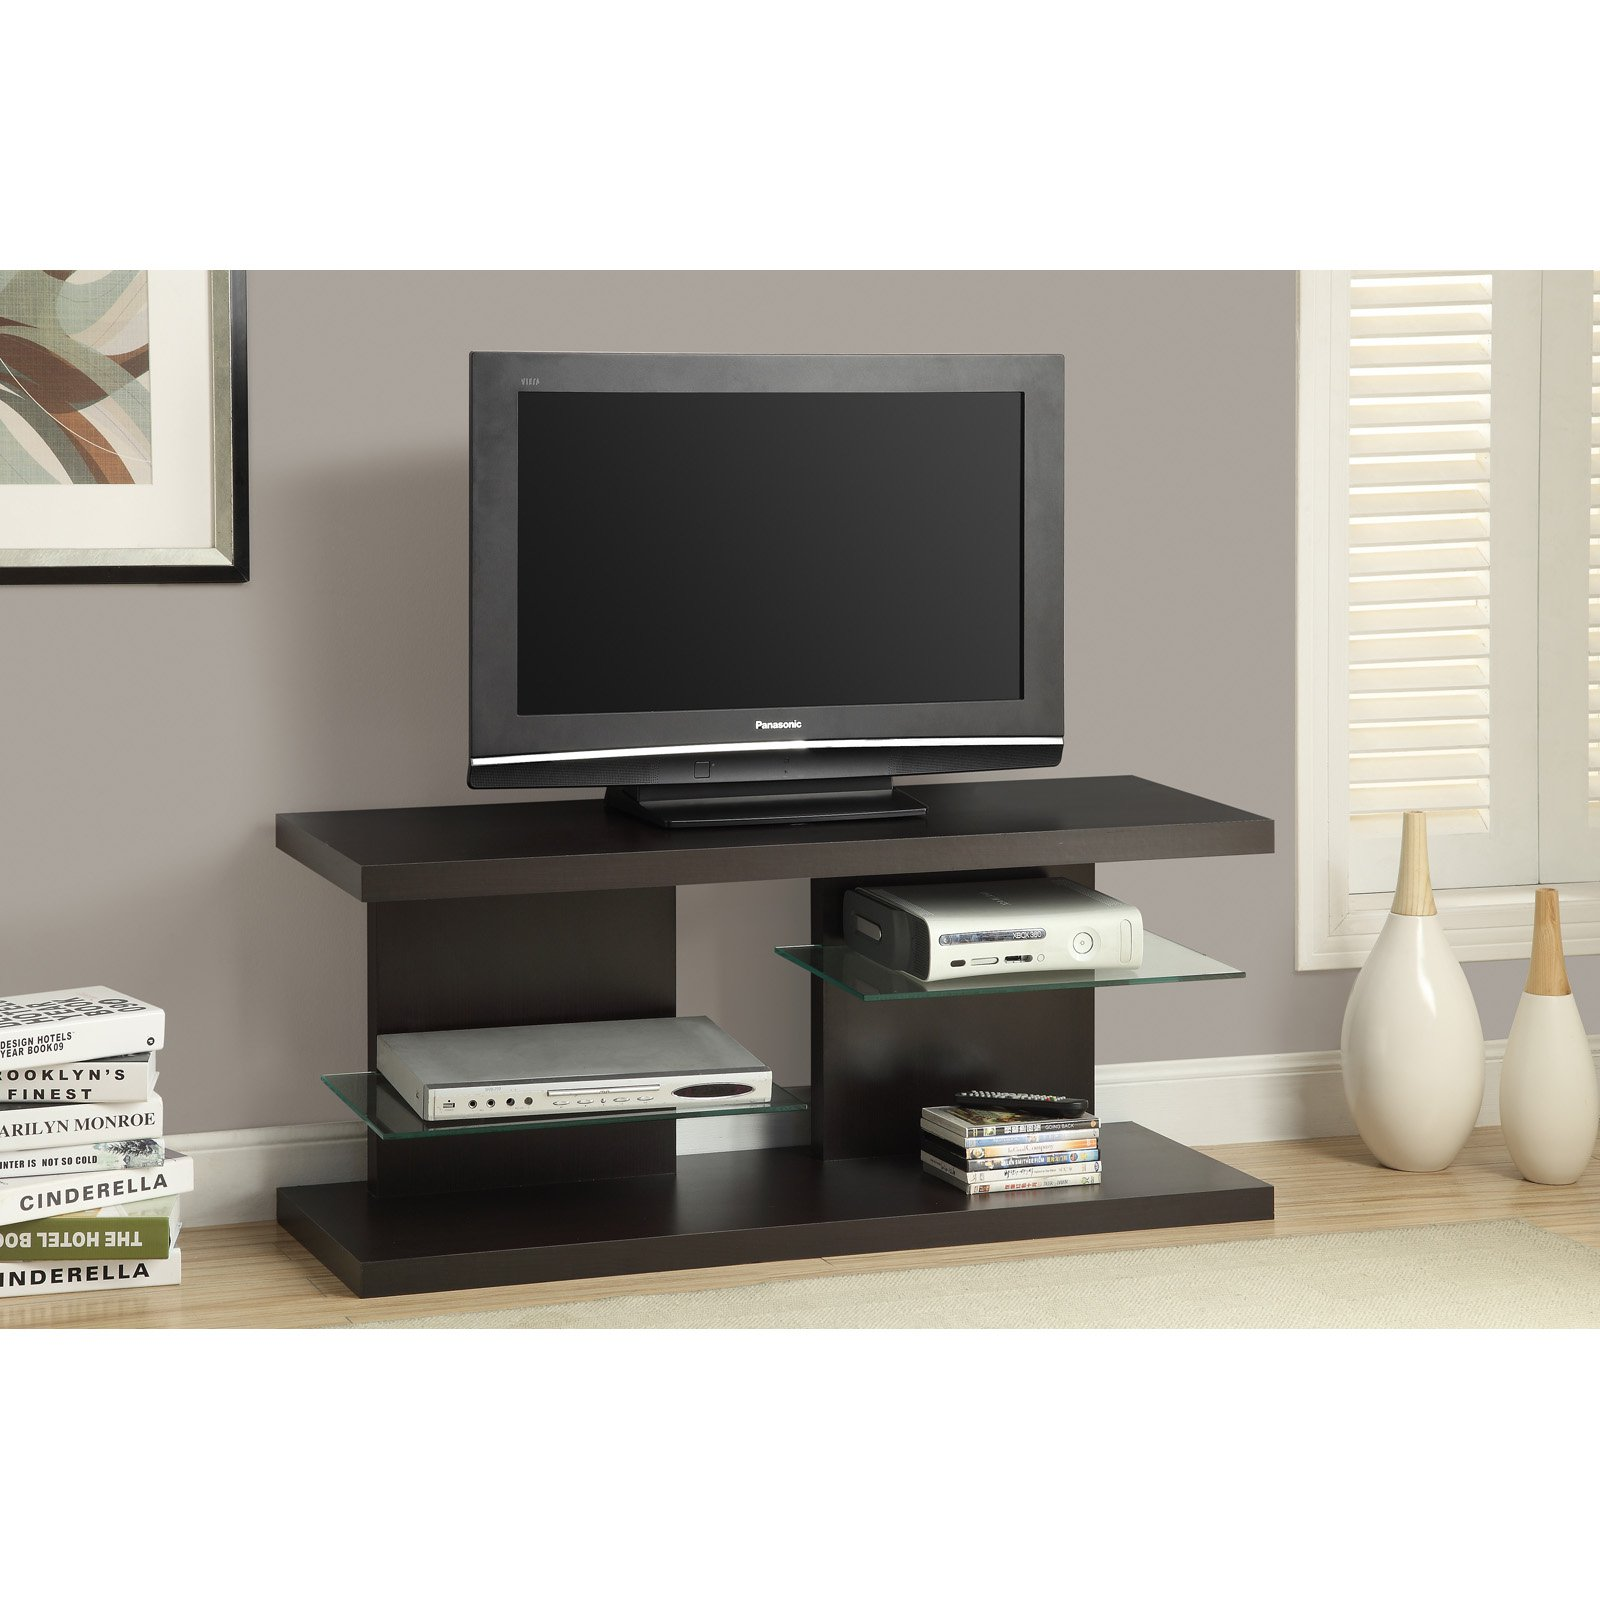 monarch specialties stand with floating glass shelves for entertainment center marble brackets command curtain rod wooden coat hooks and long ikea wall mounted storage cubes